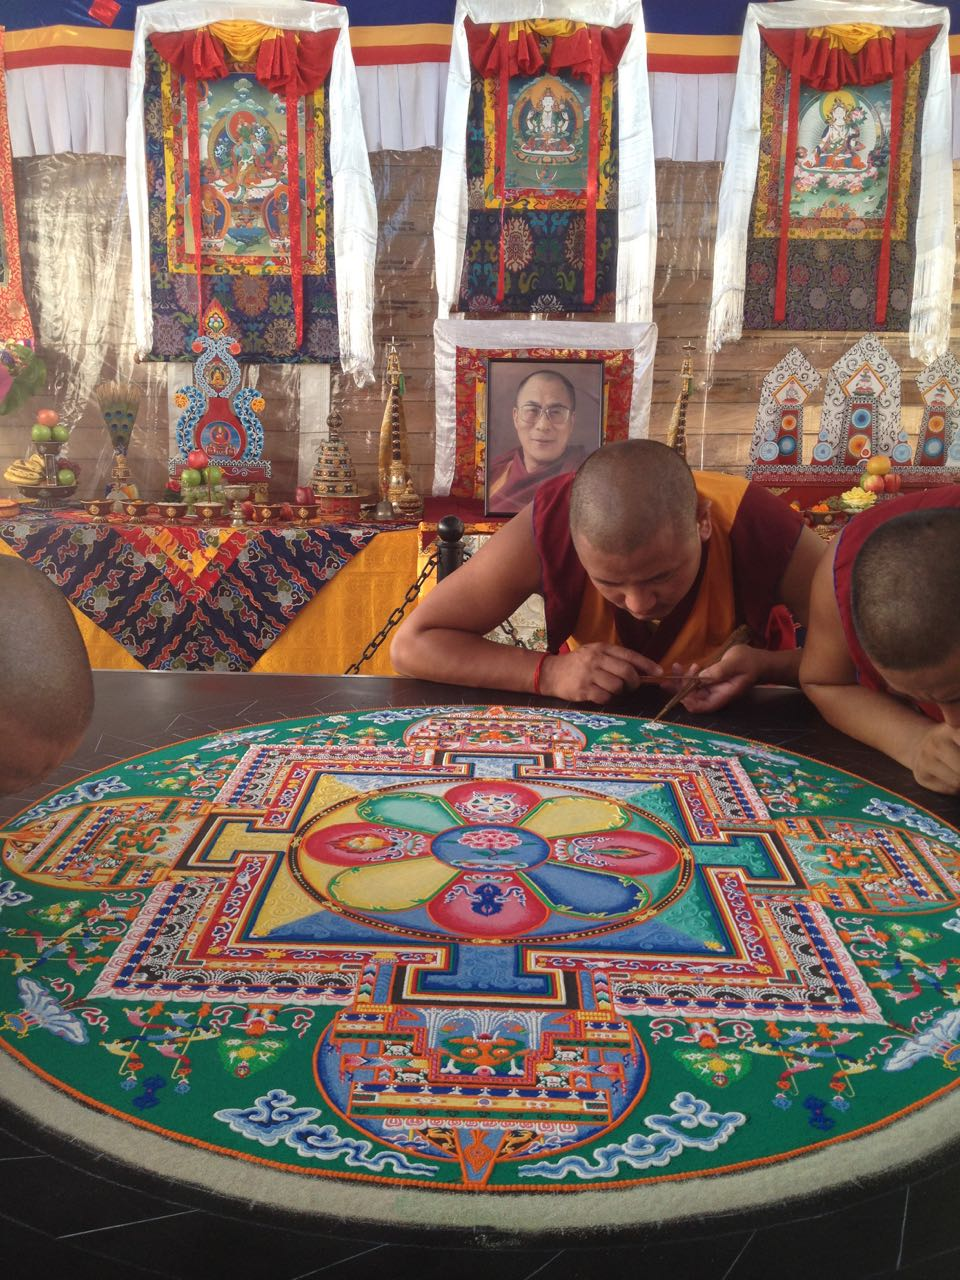 The lessons of prayer flags for the Dalai Lama in Alabama